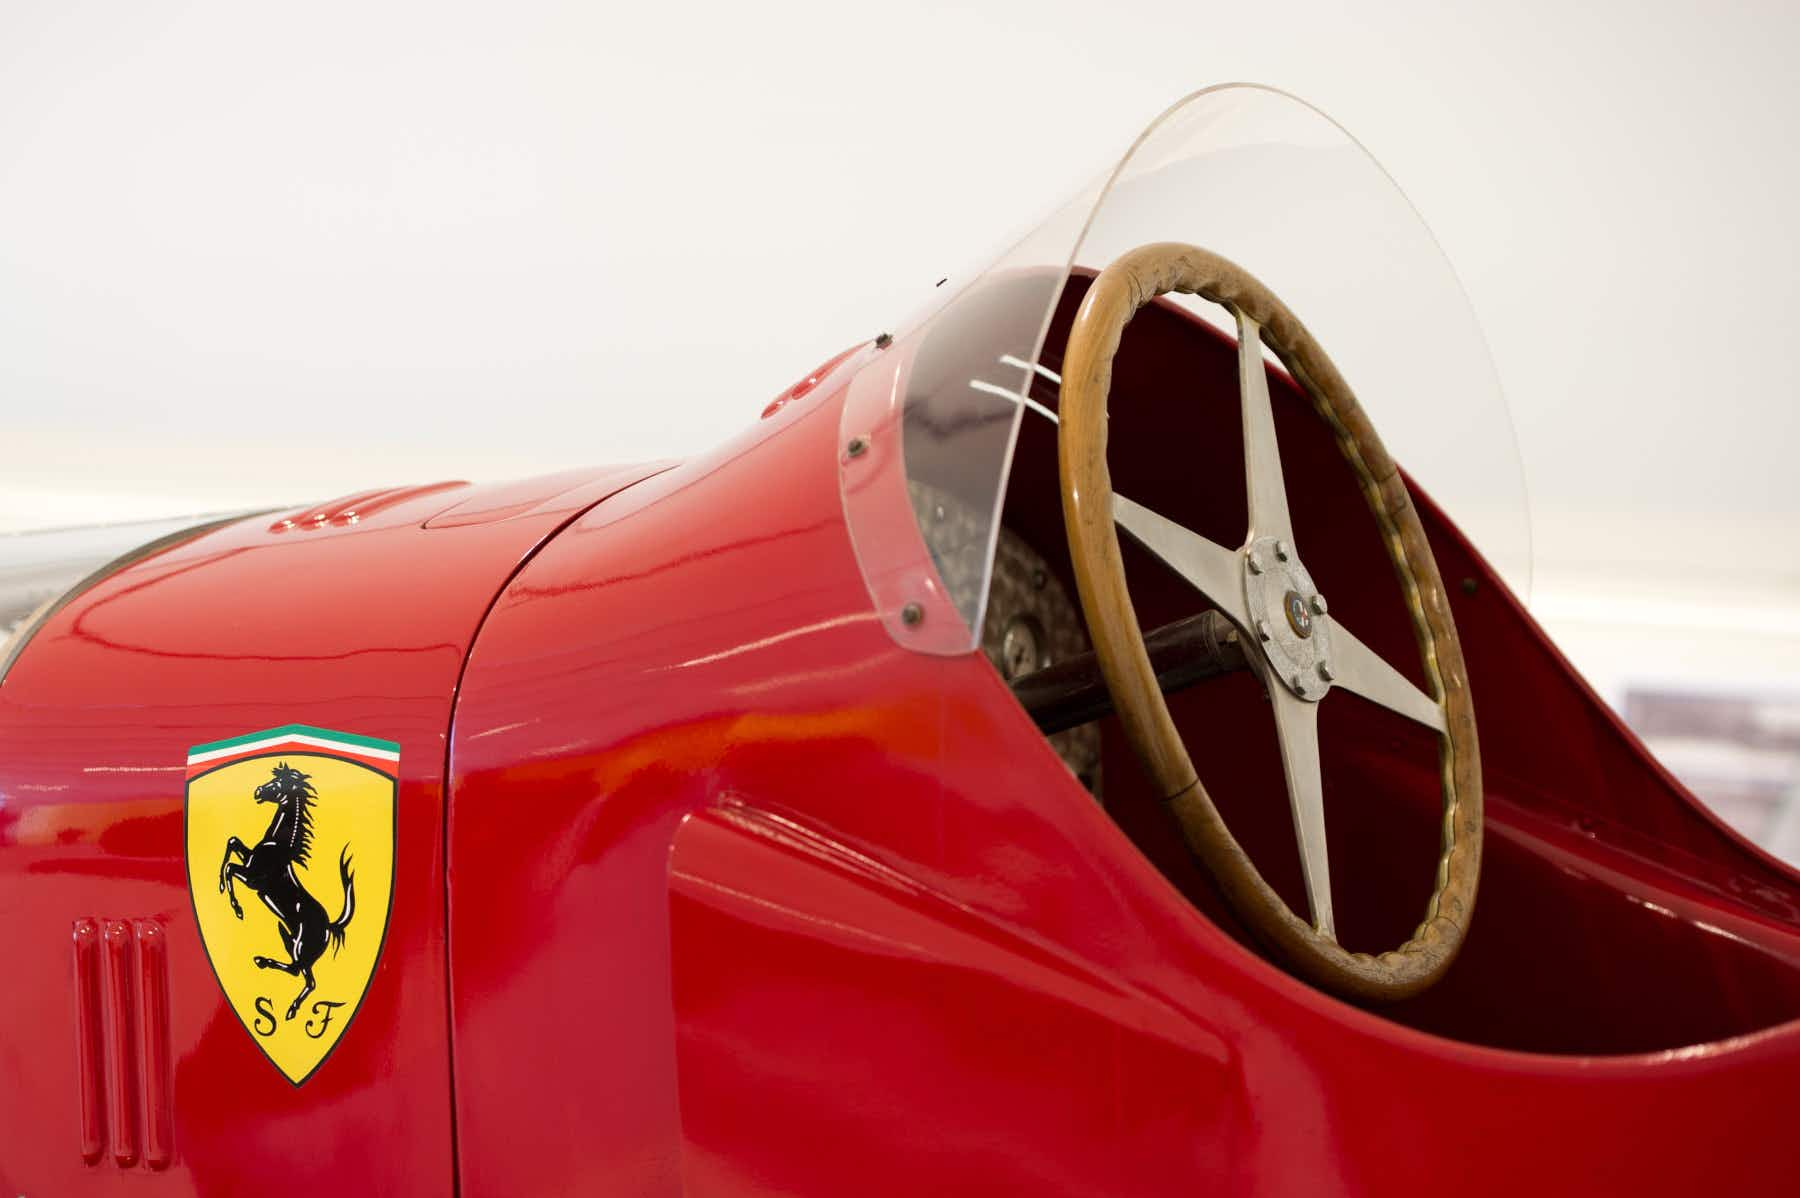 The Ferrari museum in Italy has just opened two new exhibits